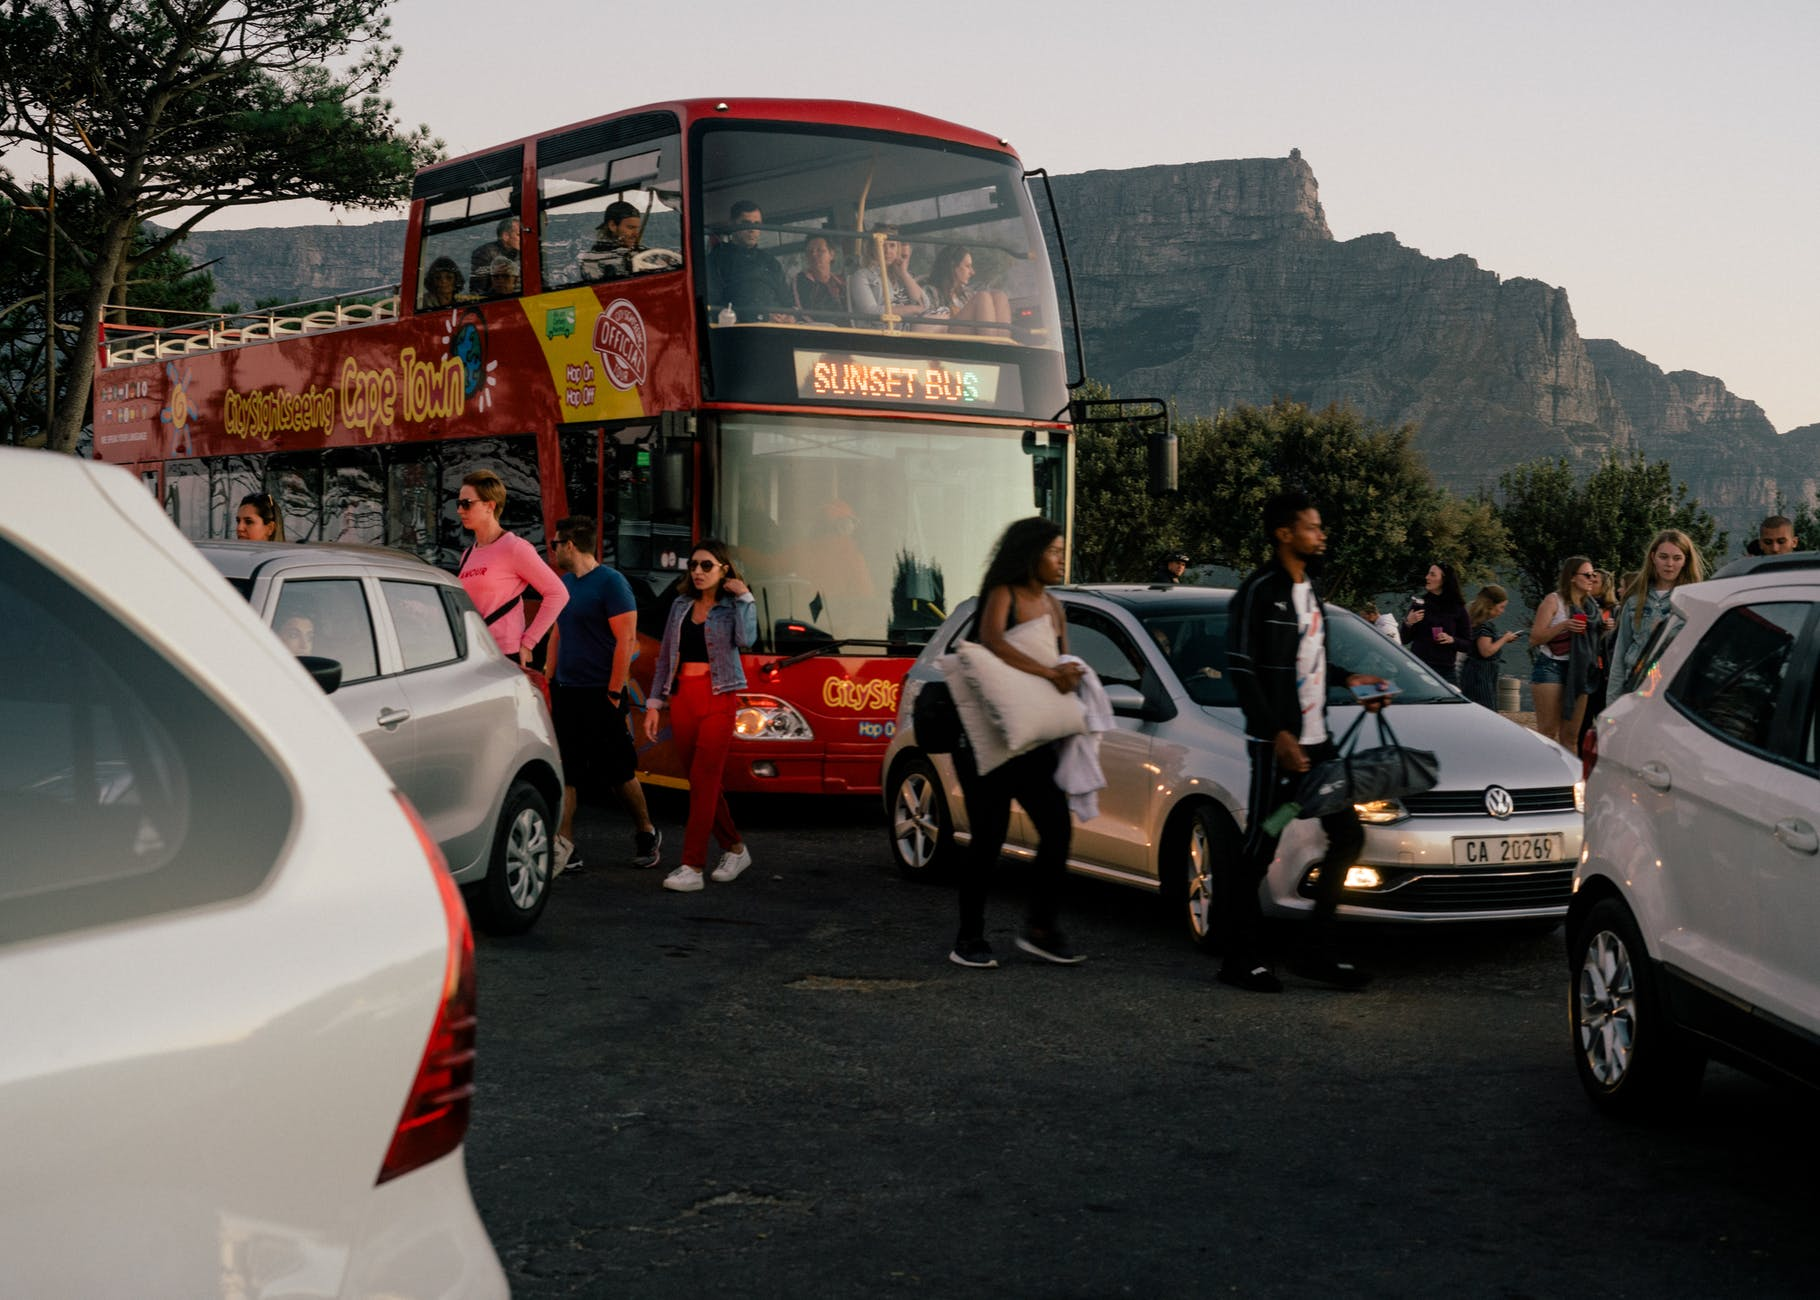 cars and tourist bus and people in mountains